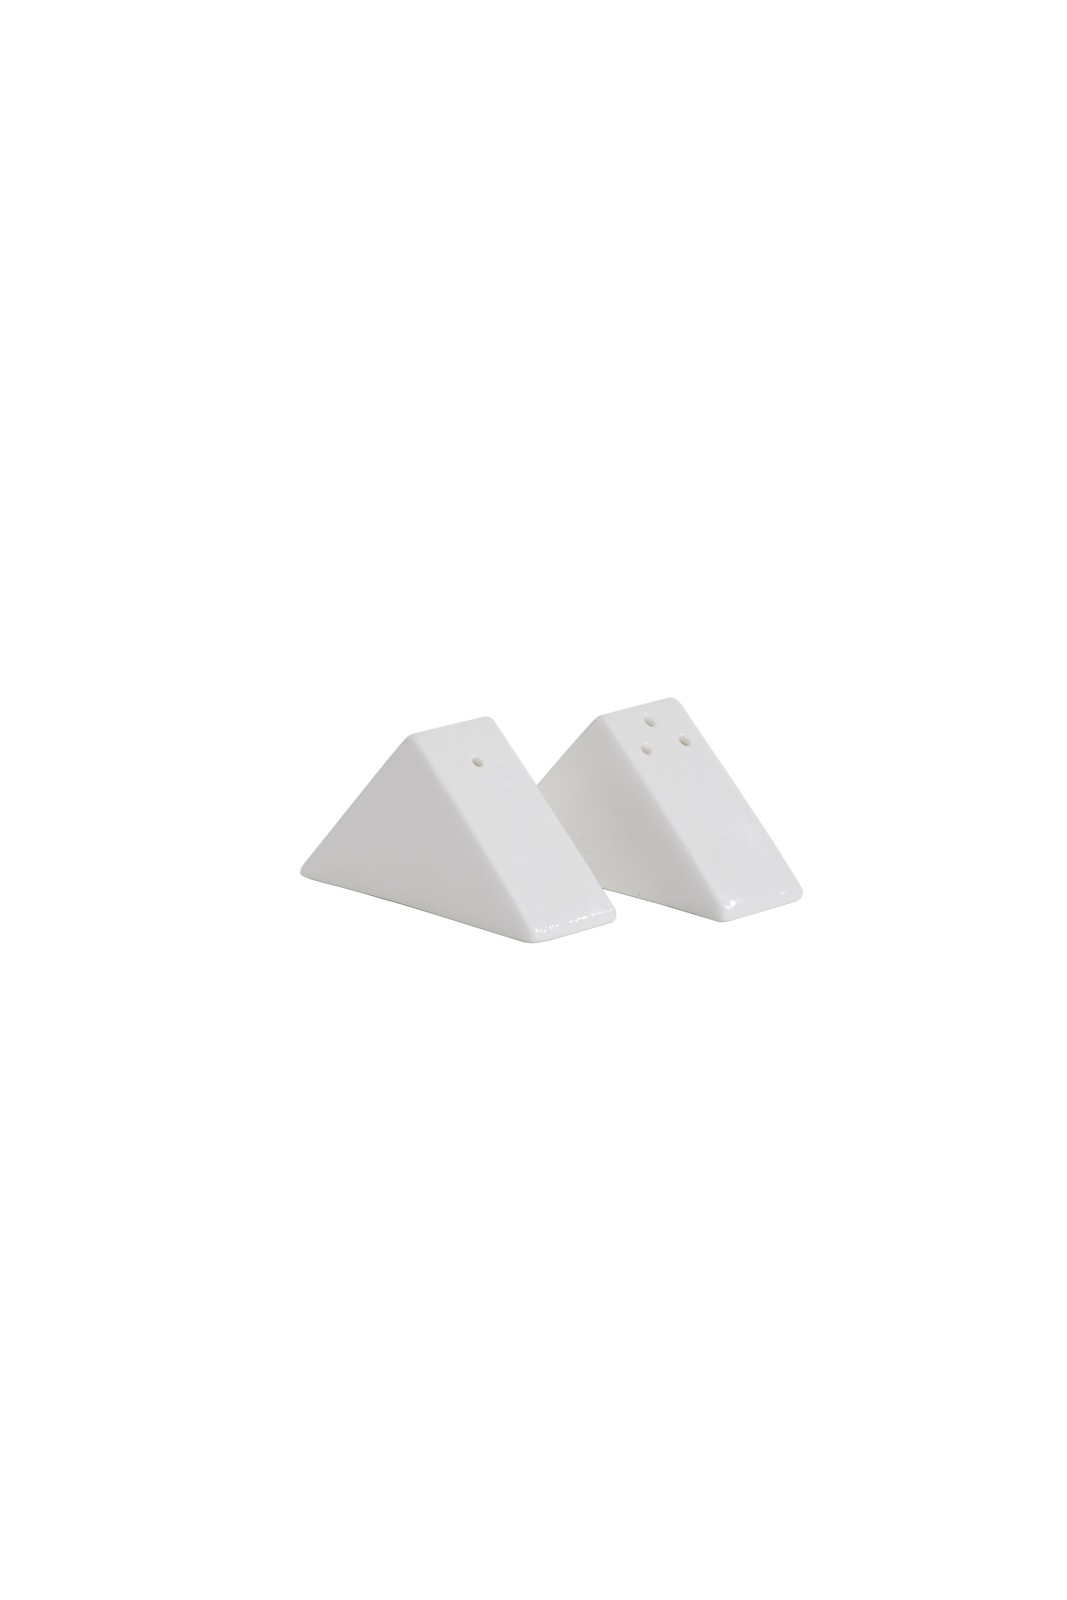 Toast Salt and Pepper shakers